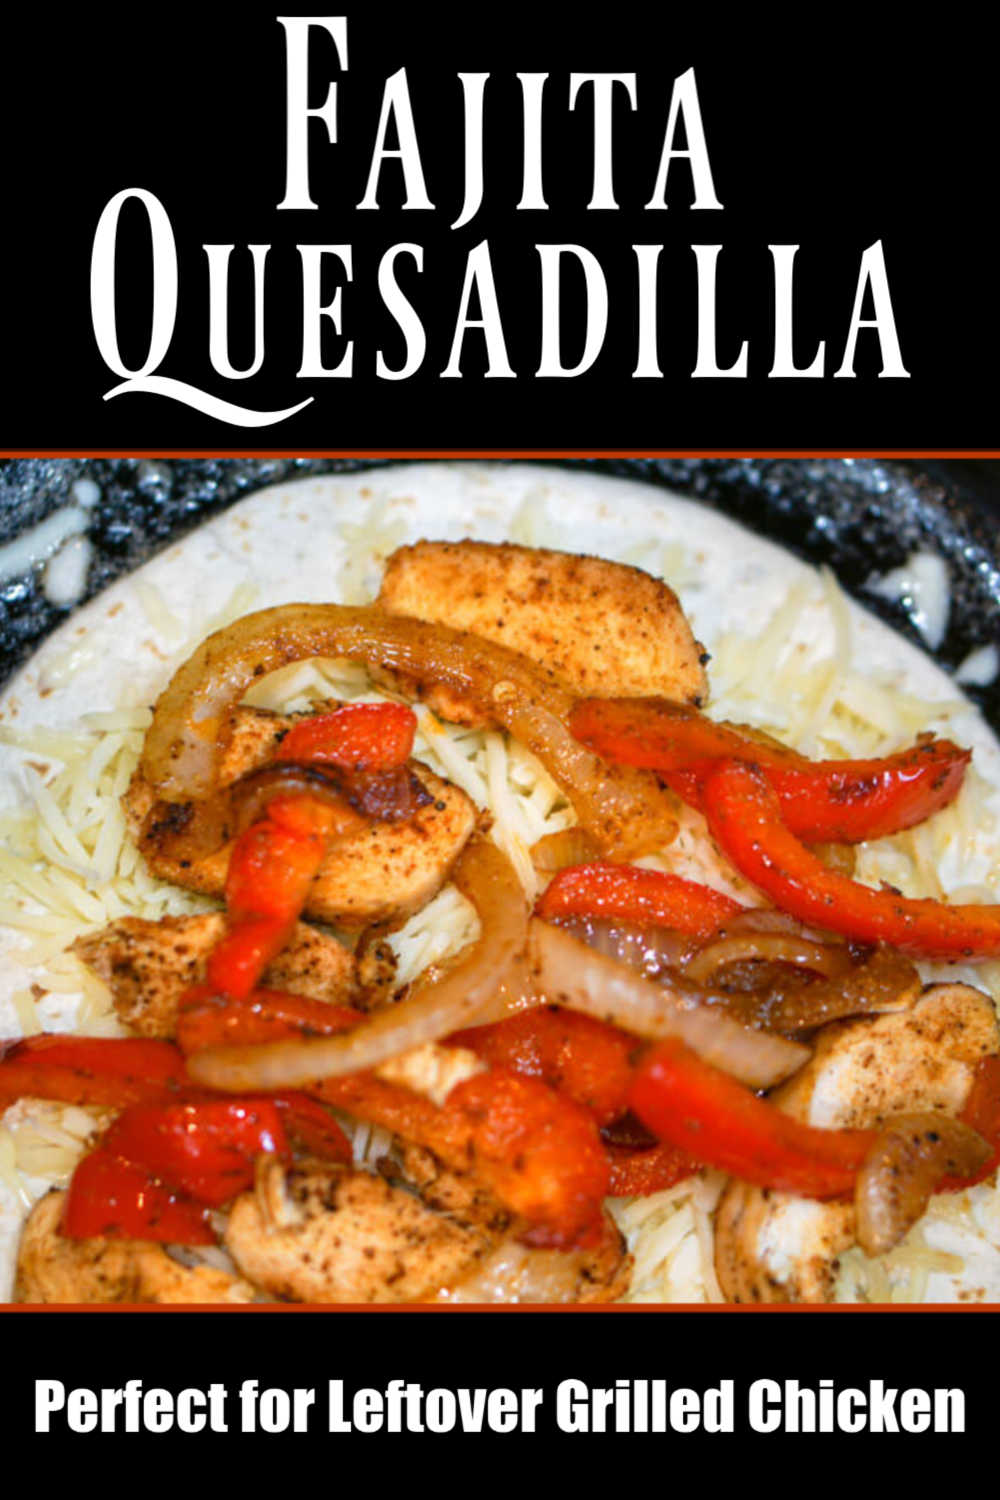 Grilled Chicken Fajita Quesadilla